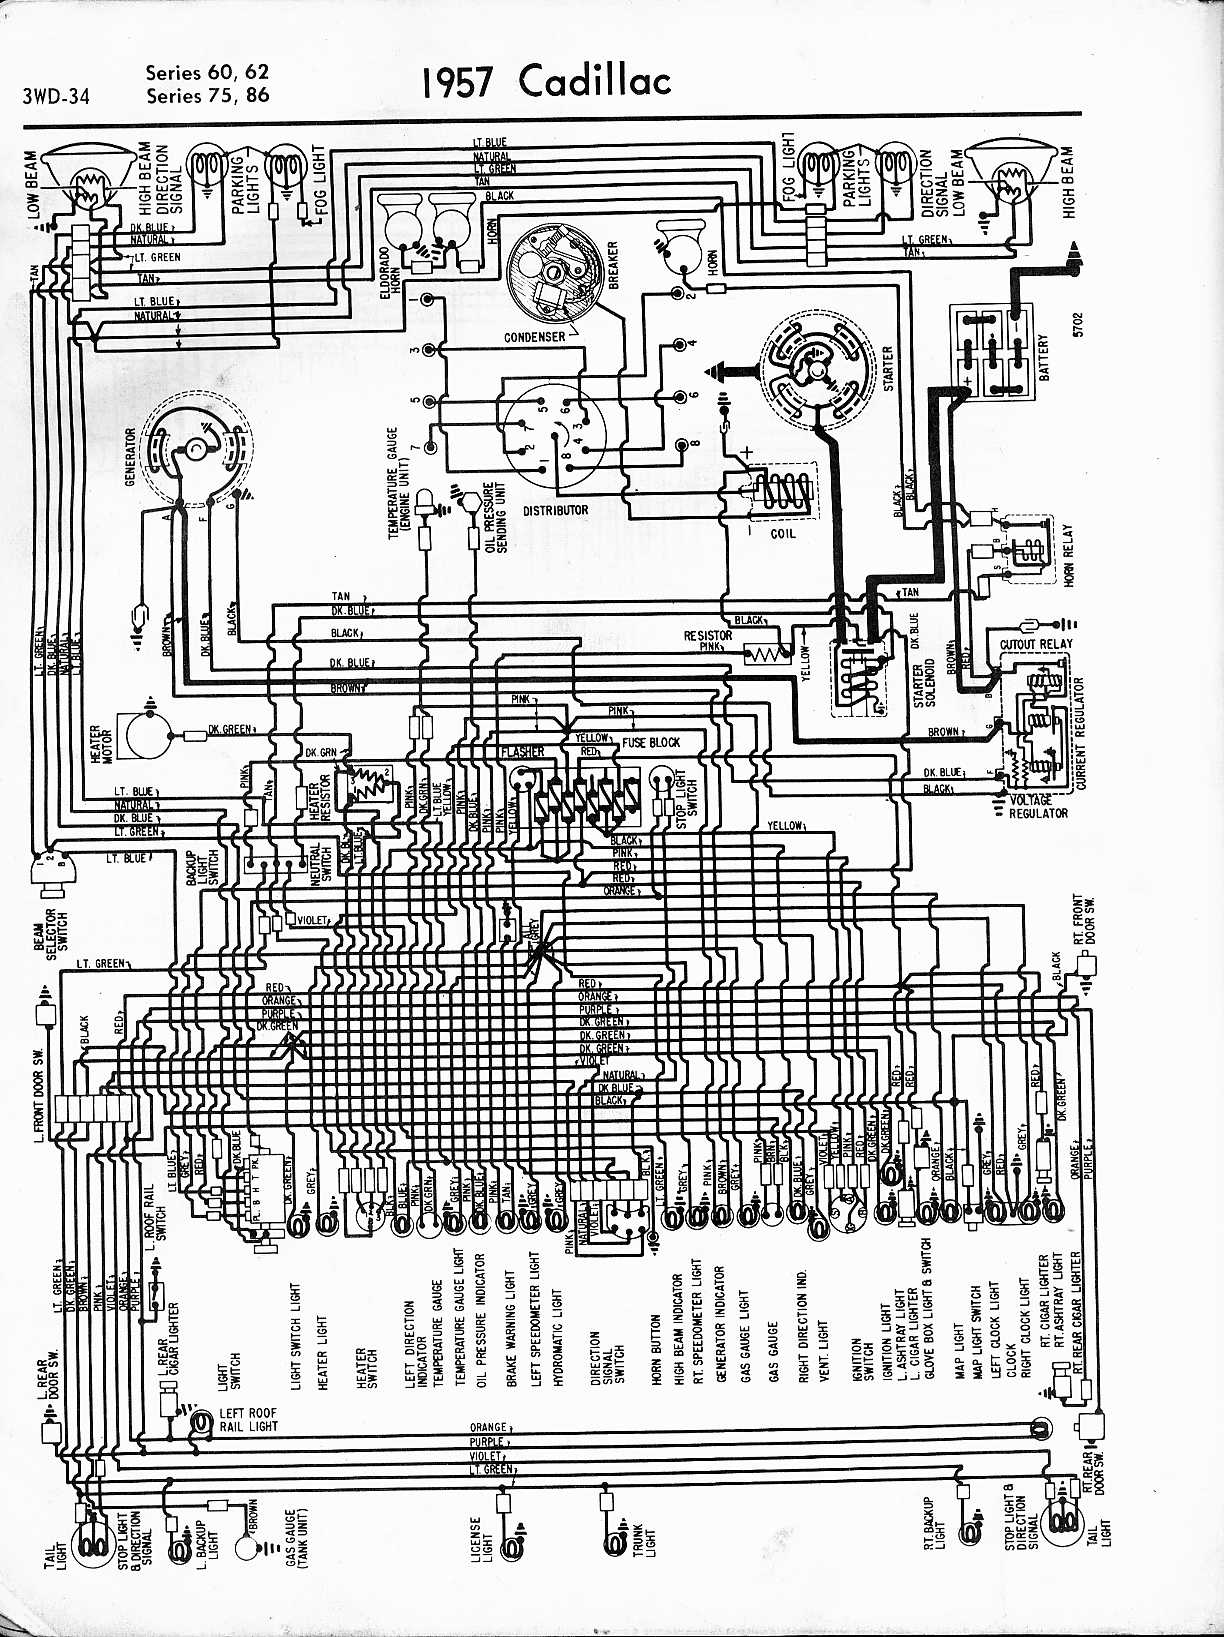 Cadillac Ignition Diagram Change Your Idea With Wiring 1993 Chevy Truck Diagrams 1957 1965 Rh Oldcarmanualproject Com Honda Switch